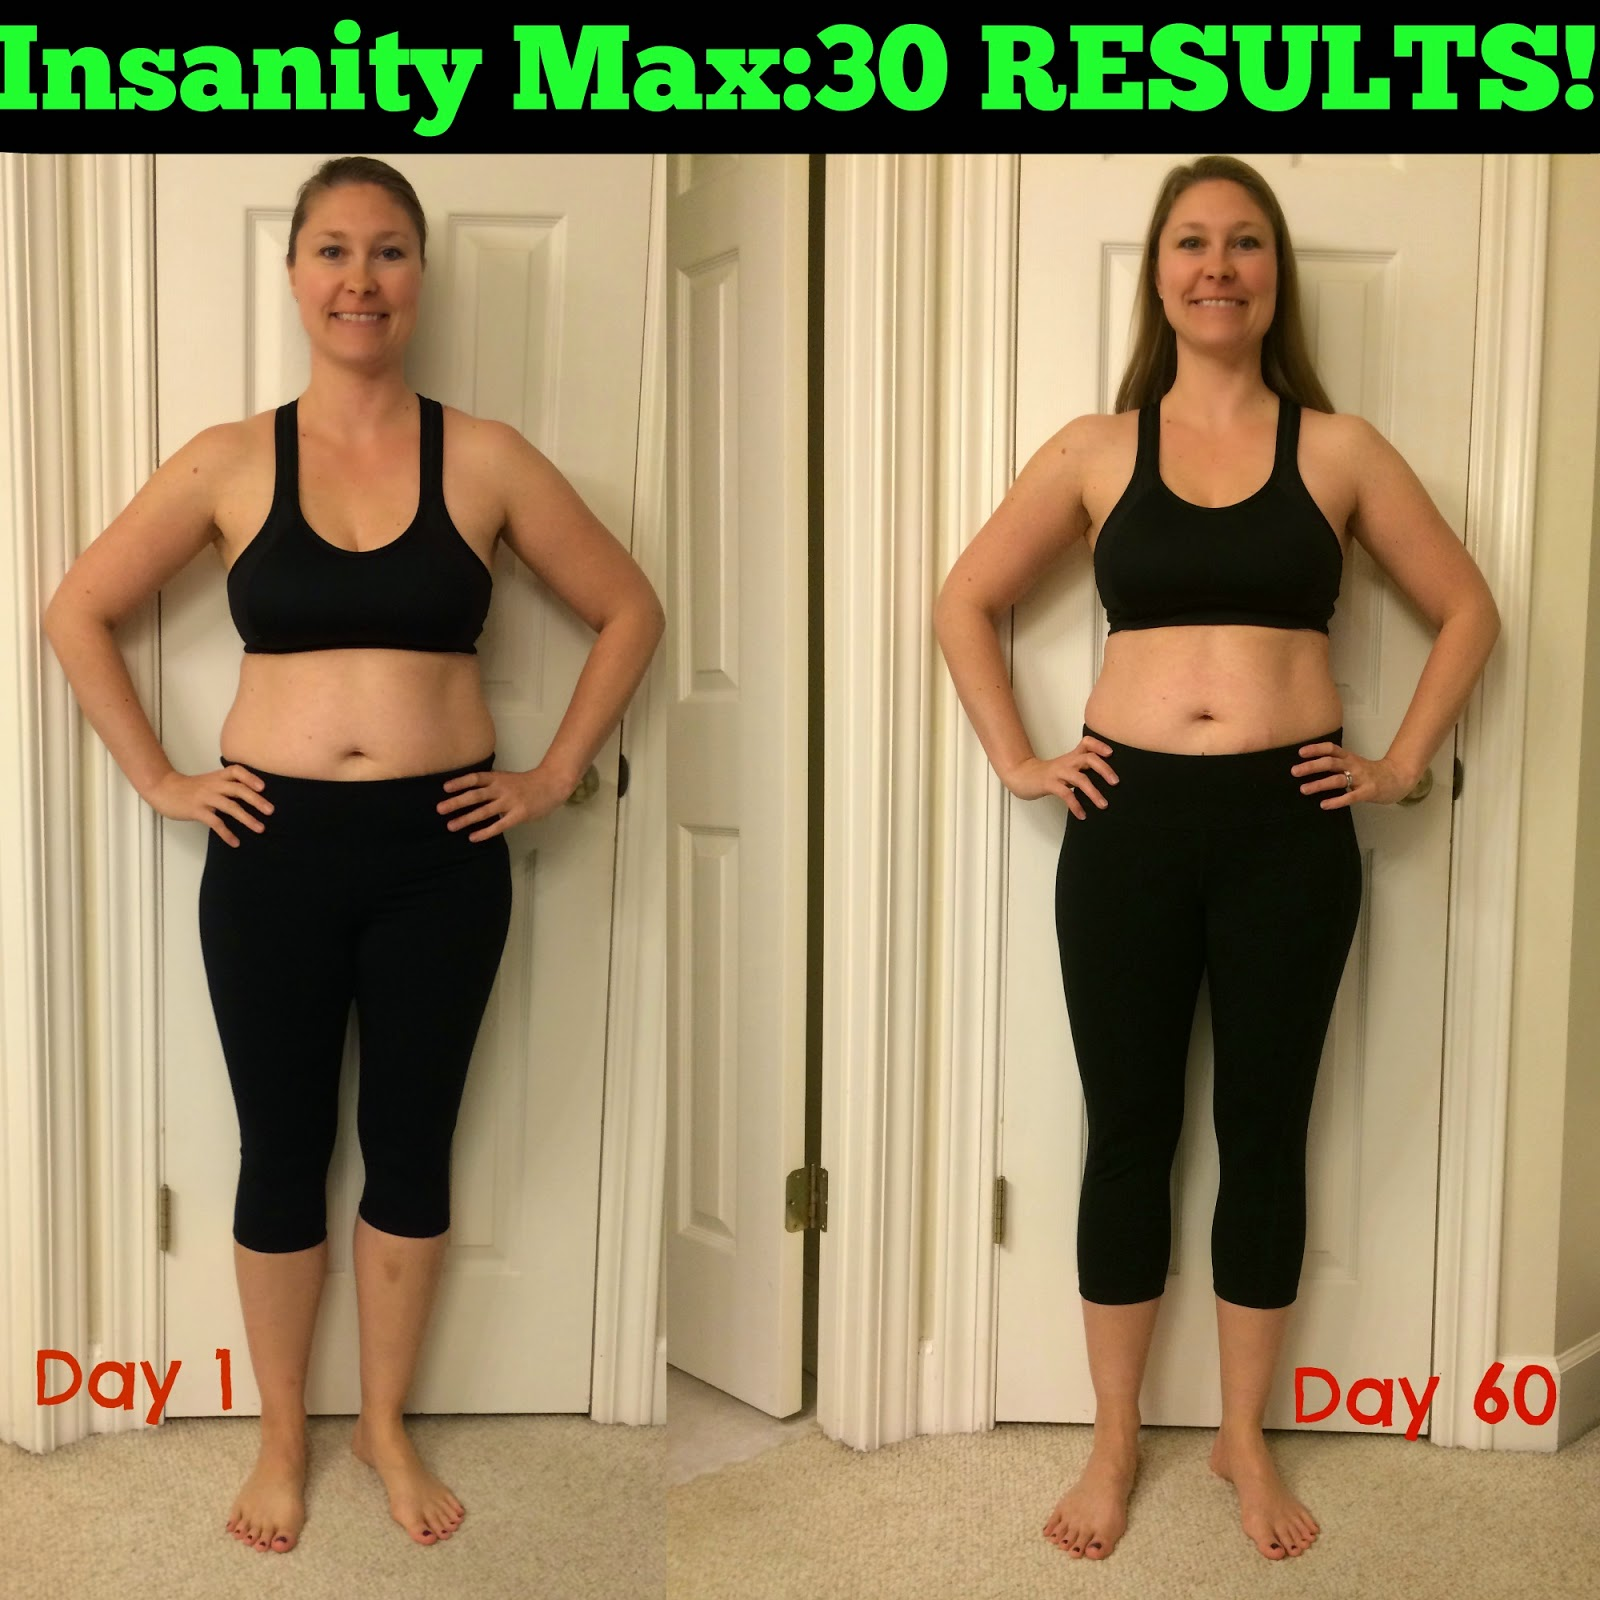 Getting My Smile Back: A Journey with Nutrition, Fitness and